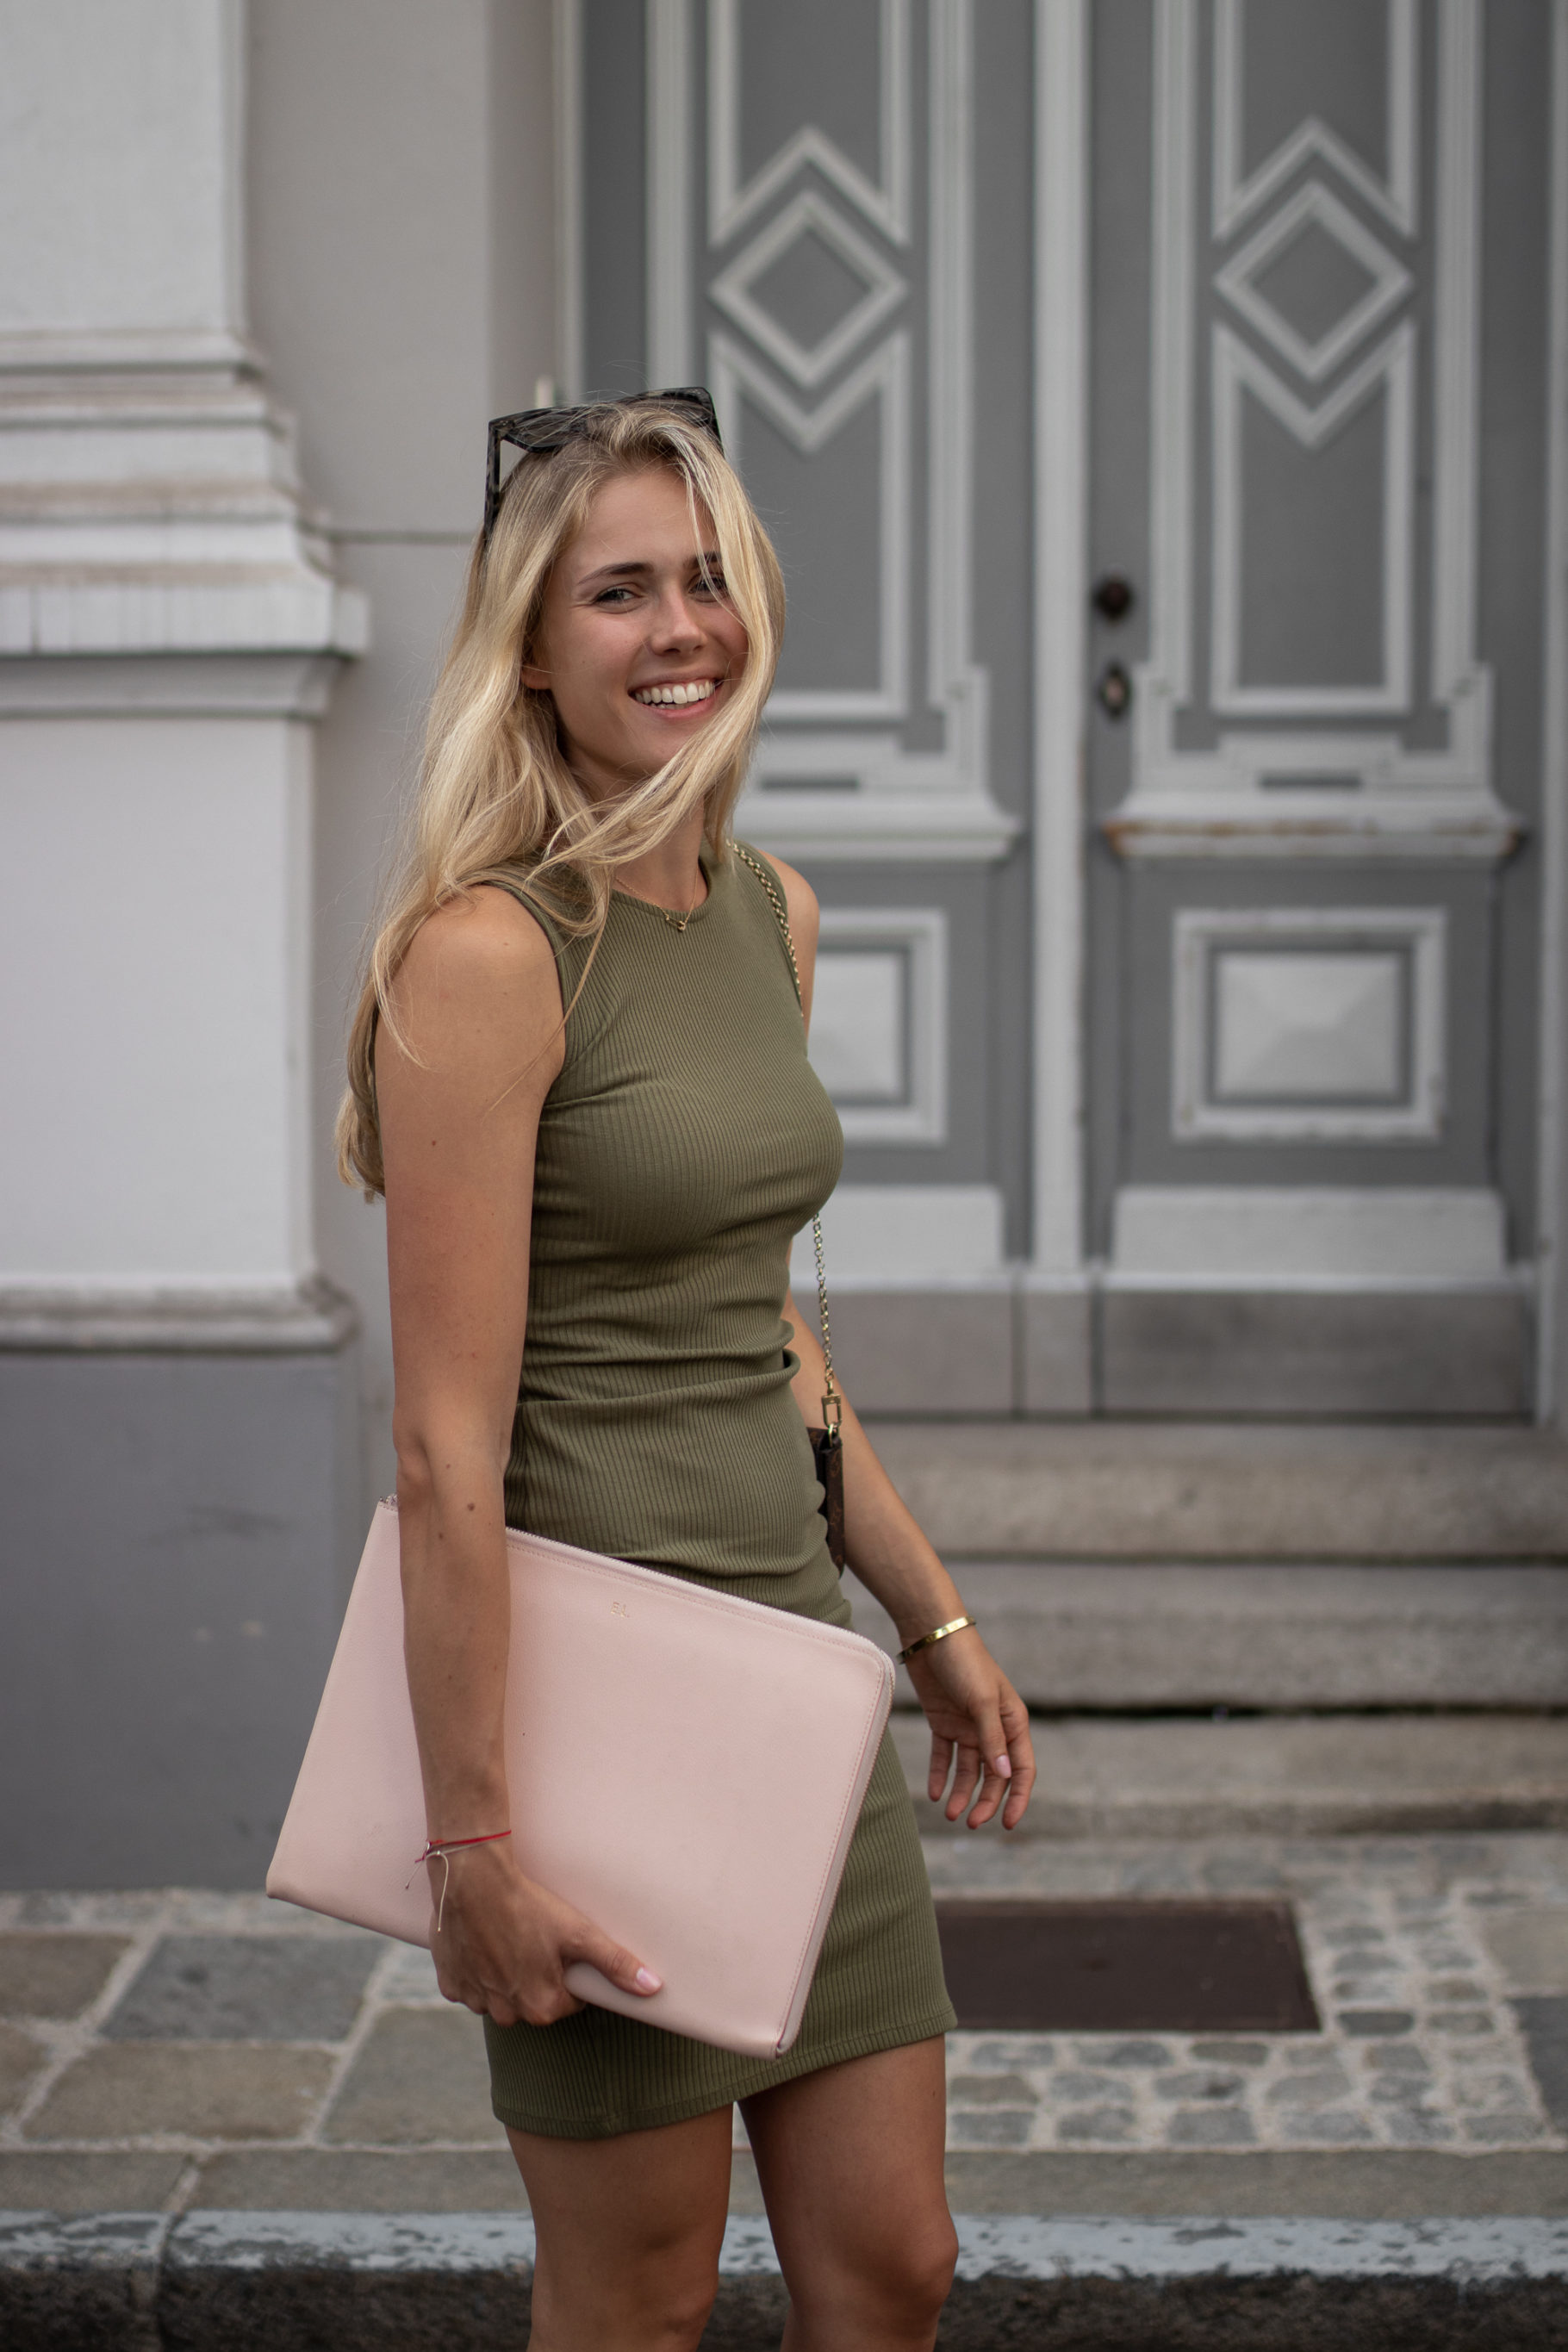 Outfit: Geripptes Jersey Kleid